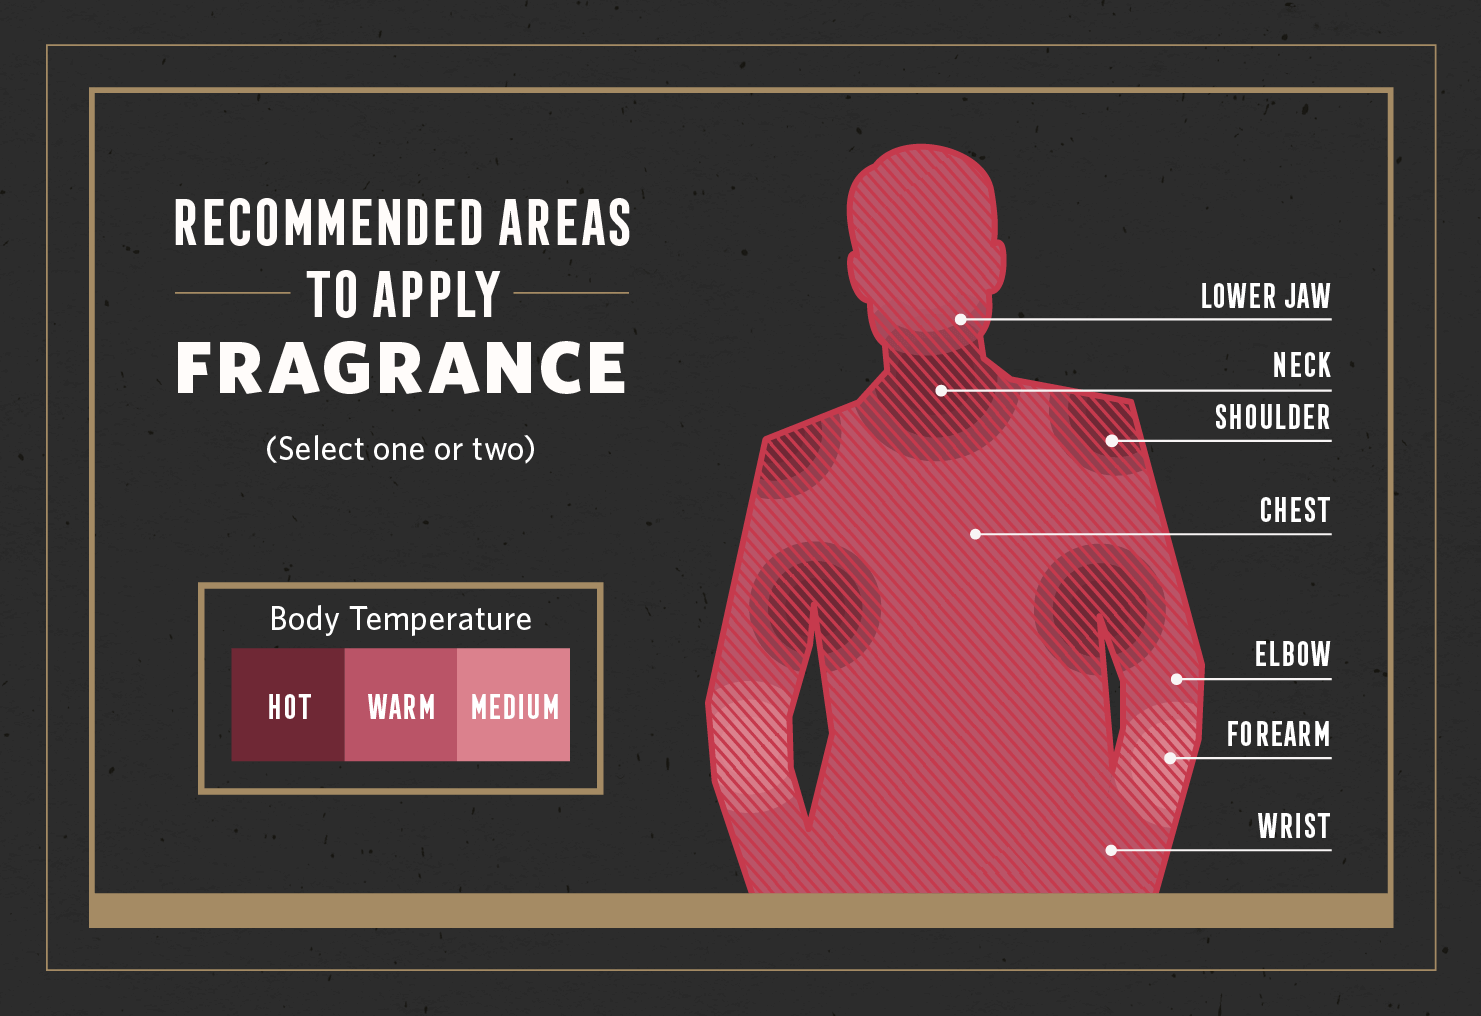 recommended areas to apply fragrance labeled illustration